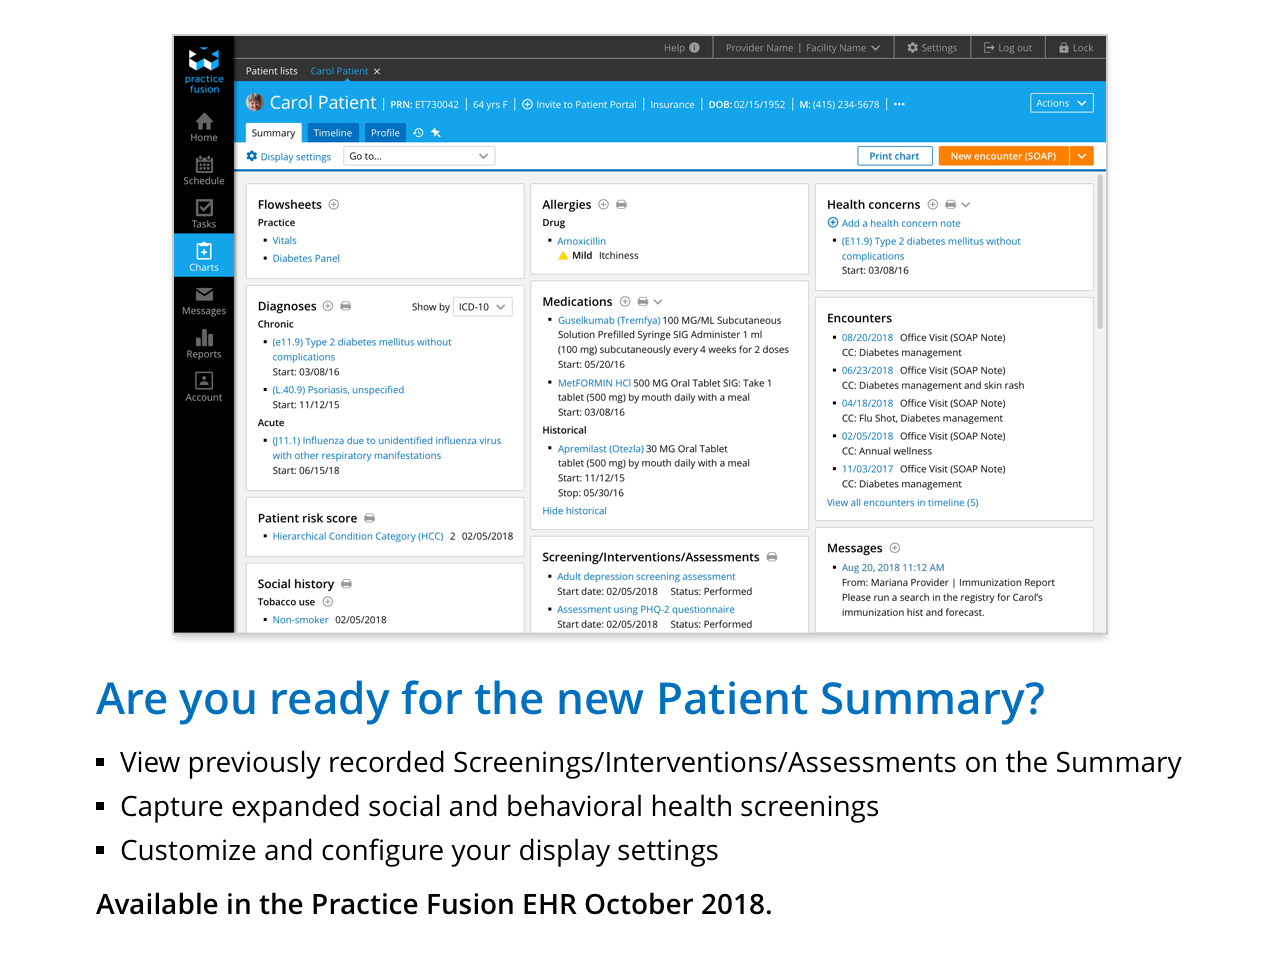 View previously recorded Screening/Interventions/Assessments on the Summary - Capture expanded social and behavioral health screenings - Customize and configure your display settings. Available in the Practice Fusion EHR October 2018.